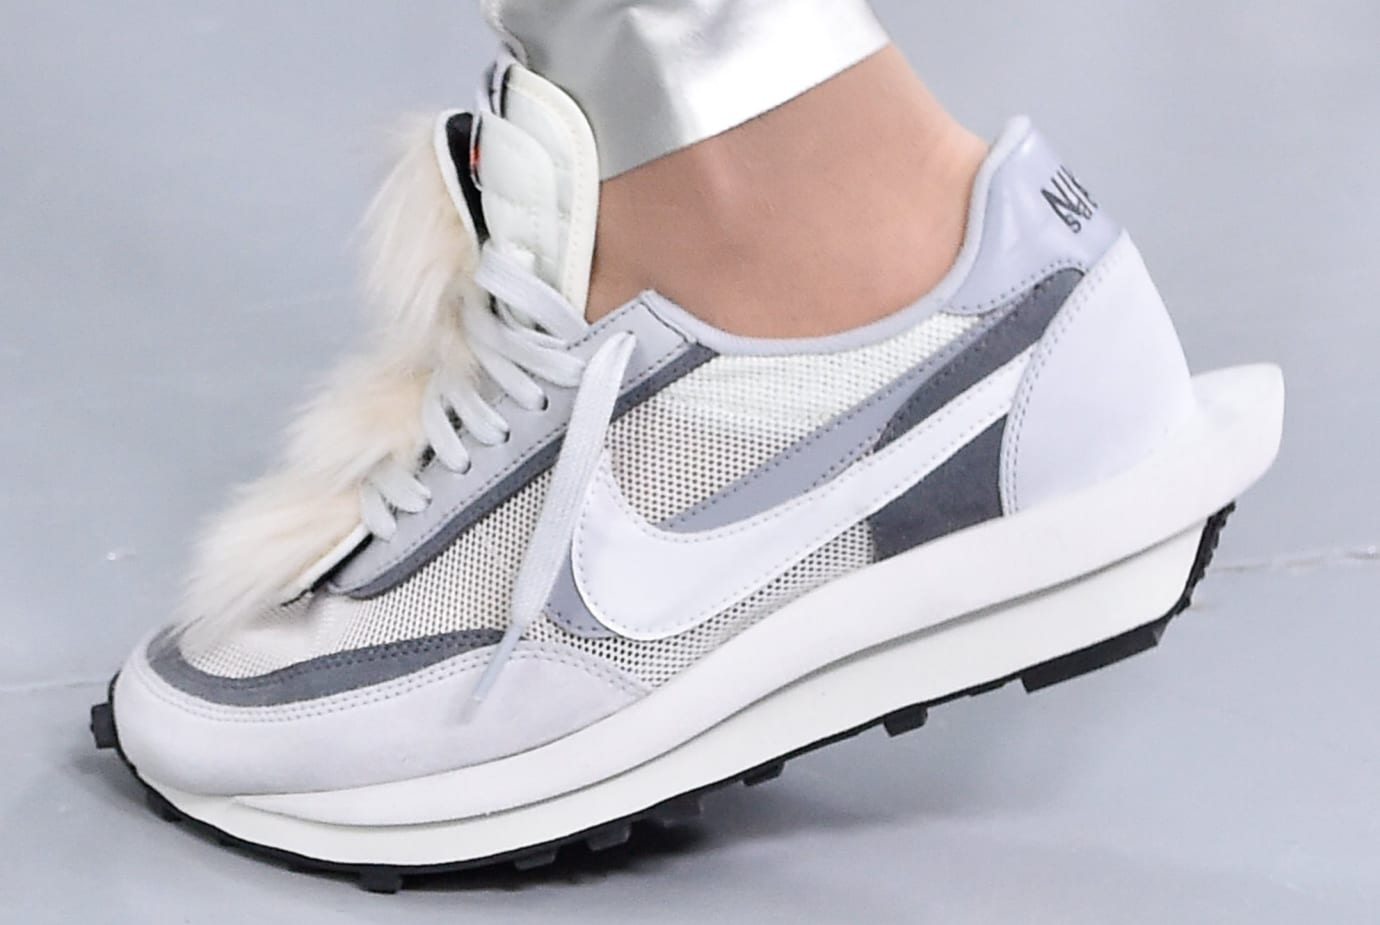 51a84cb5b966 Image via Peter White for Getty sacai-nike-hybrid-waffle-daybreak-ldv-white -lateral